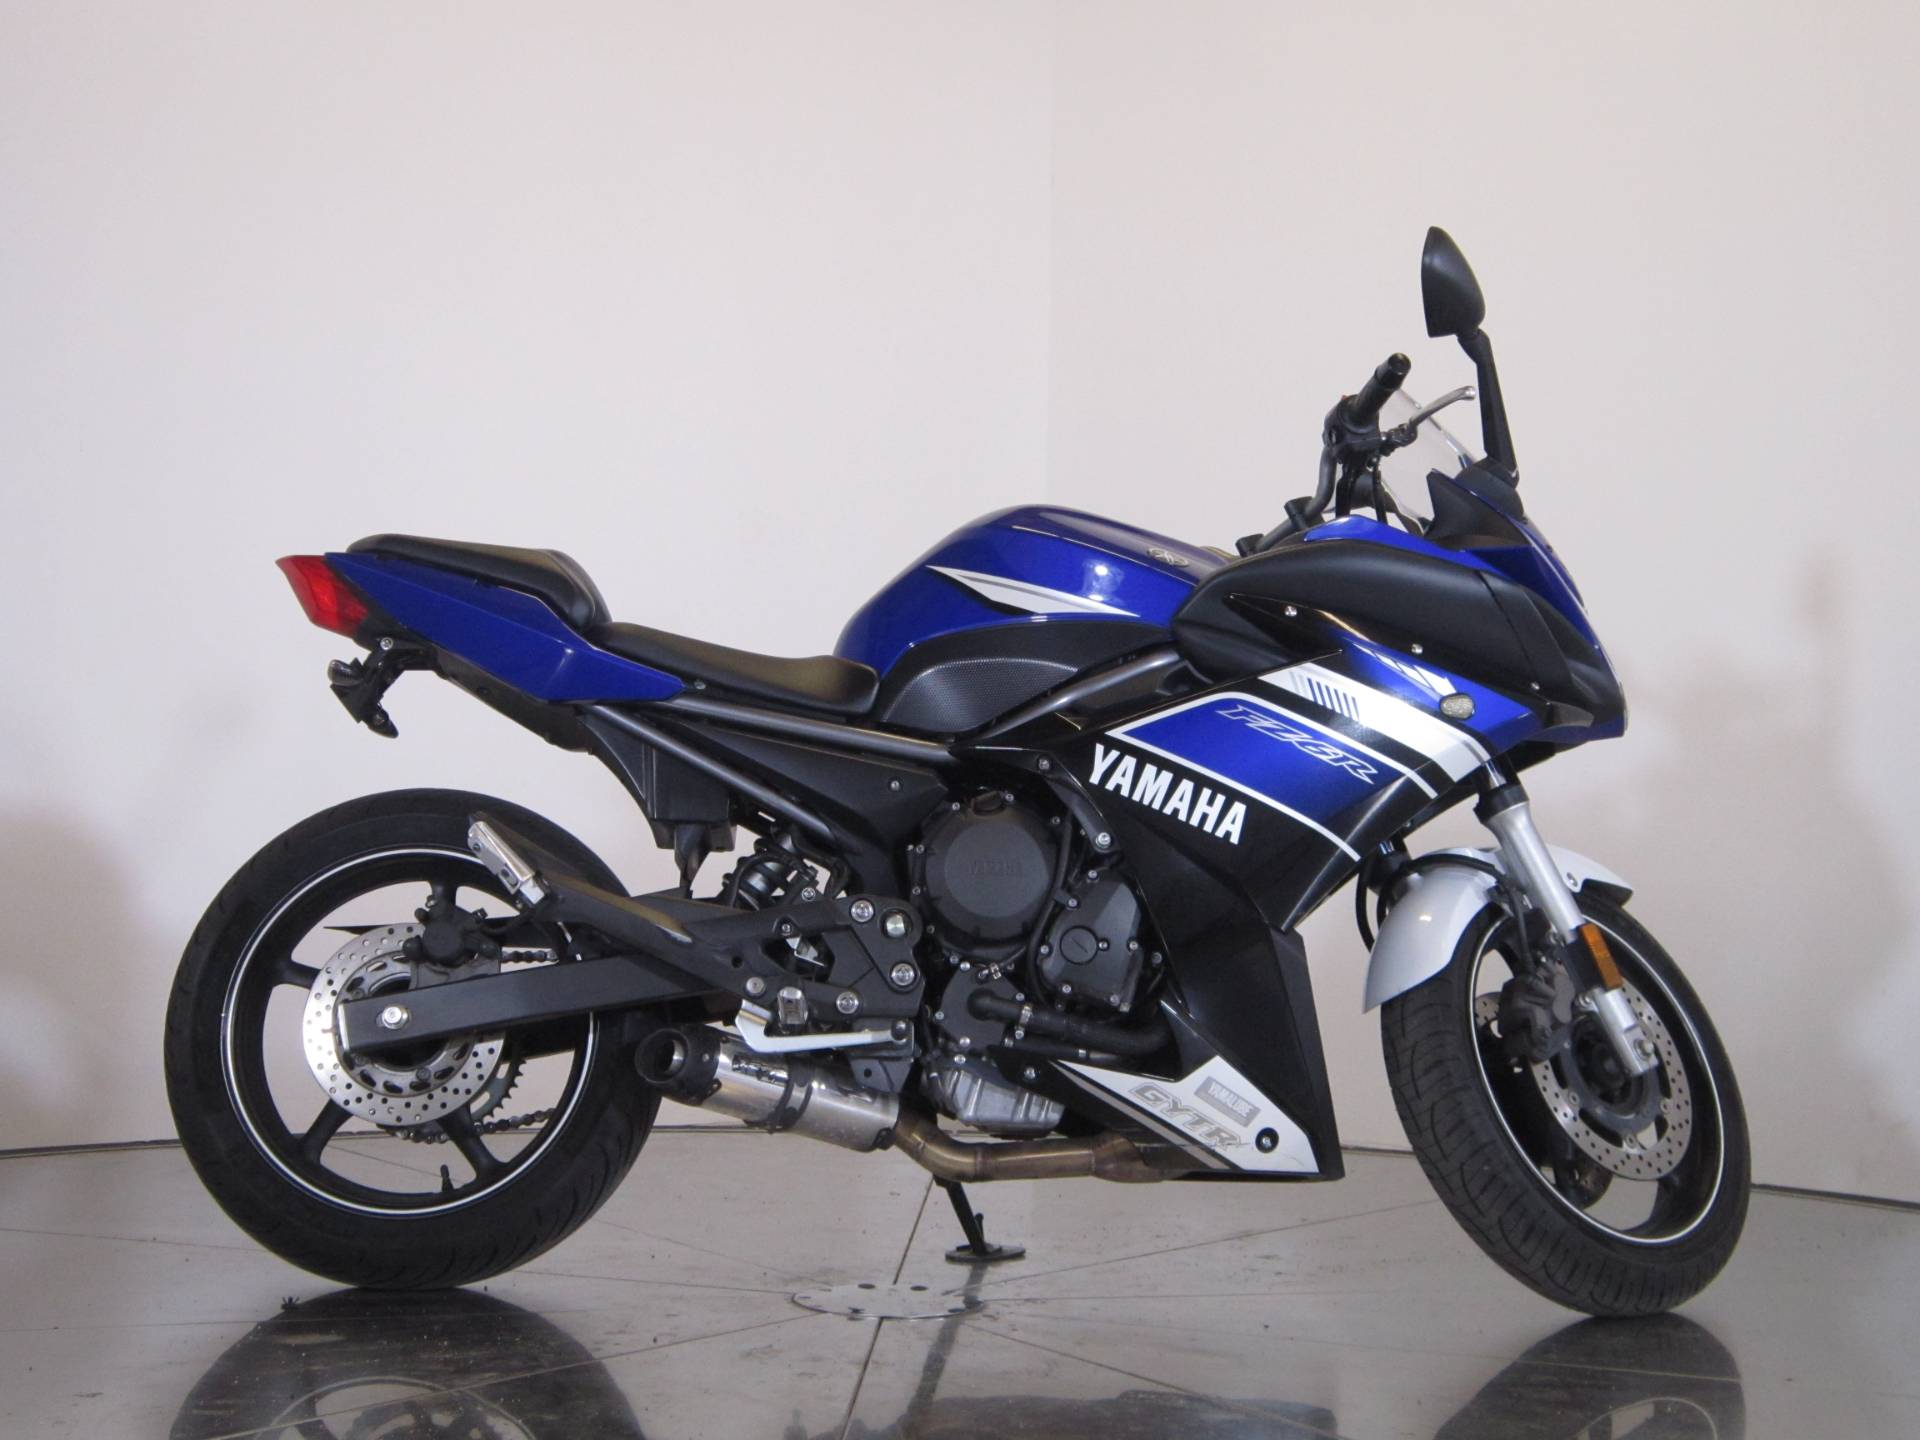 Used 2013 Yamaha FZ6R Motorcycles in Greenwood Village, CO | Stock ...